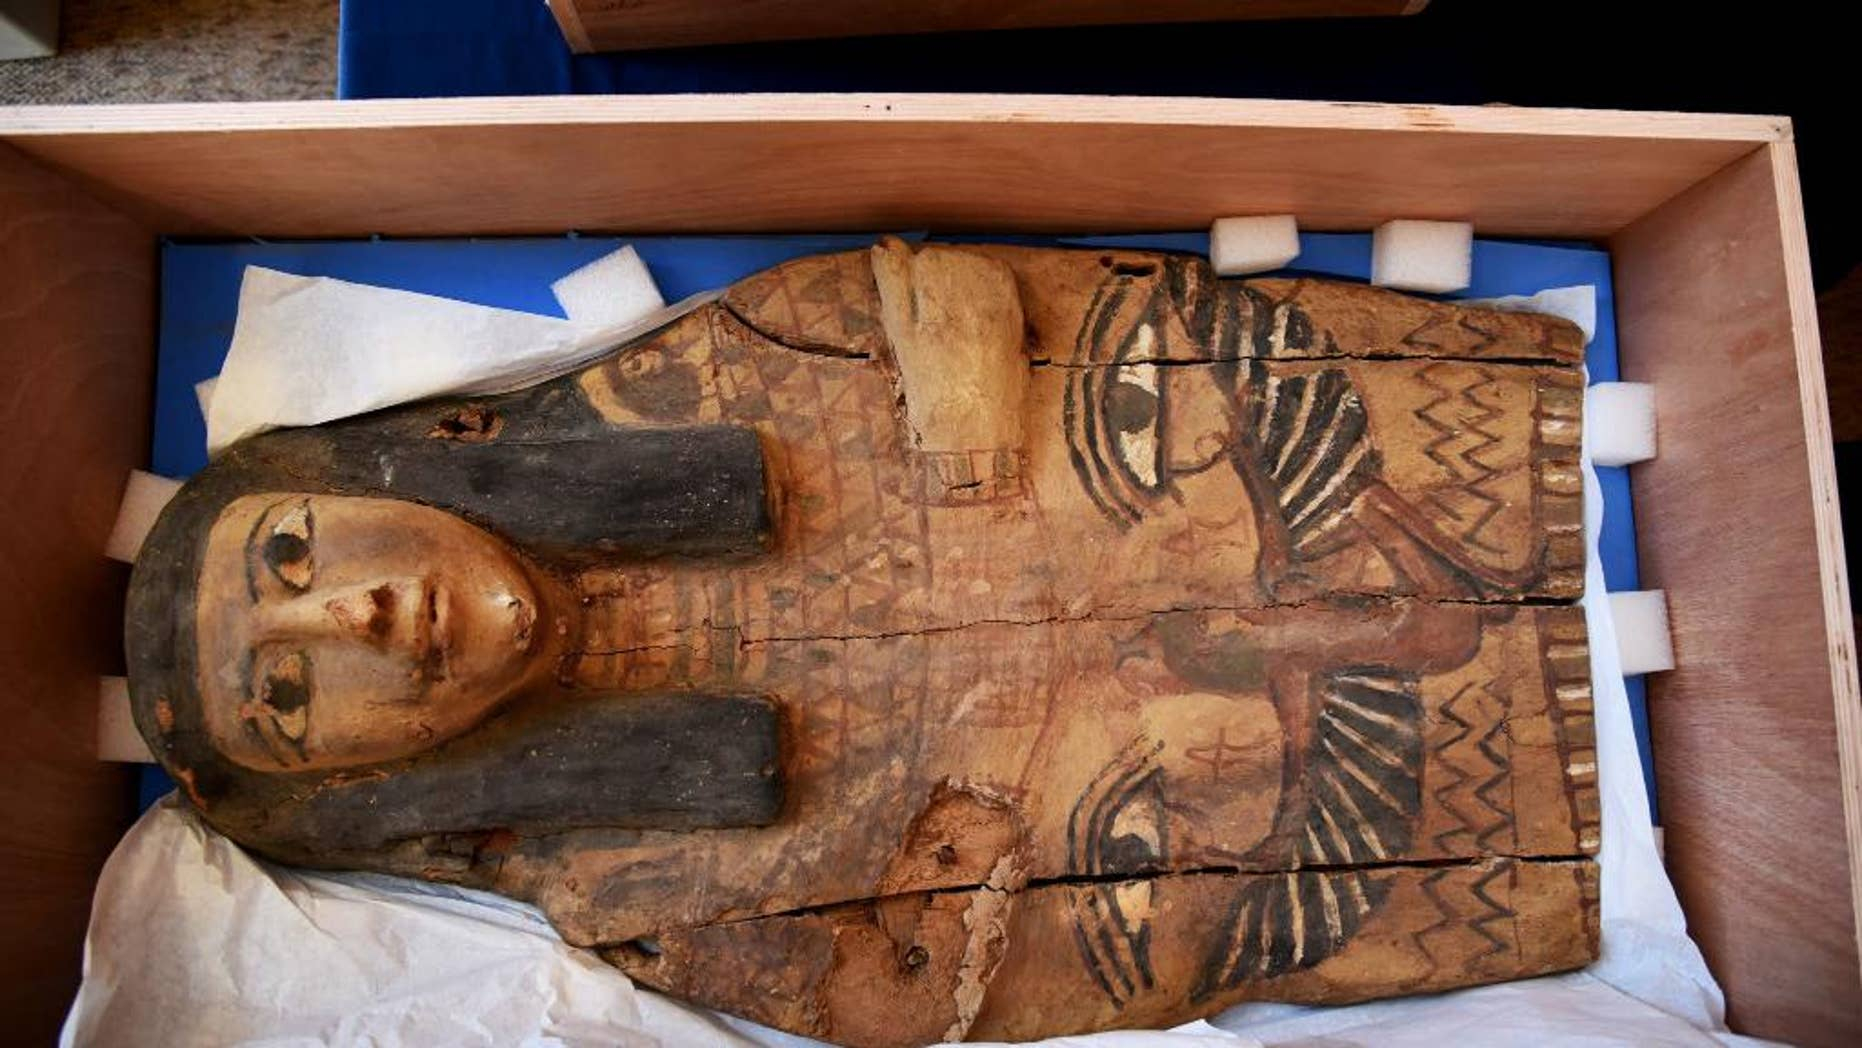 This undated photo released by the Israeli Foreign Ministry shows a part of sarcophagus cover in Israel. Israel's Antiquities Authority says the colorful sarcophagus covers date back as early as the 16th and 10th centuries BCE. It says they were shipped from Egypt to Dubai and later from London to Israel. Israeli officials discovered the in 2012 in an antiquities dealer's store in Jerusalem's Old City. (Israeli Foreign Ministry via AP)